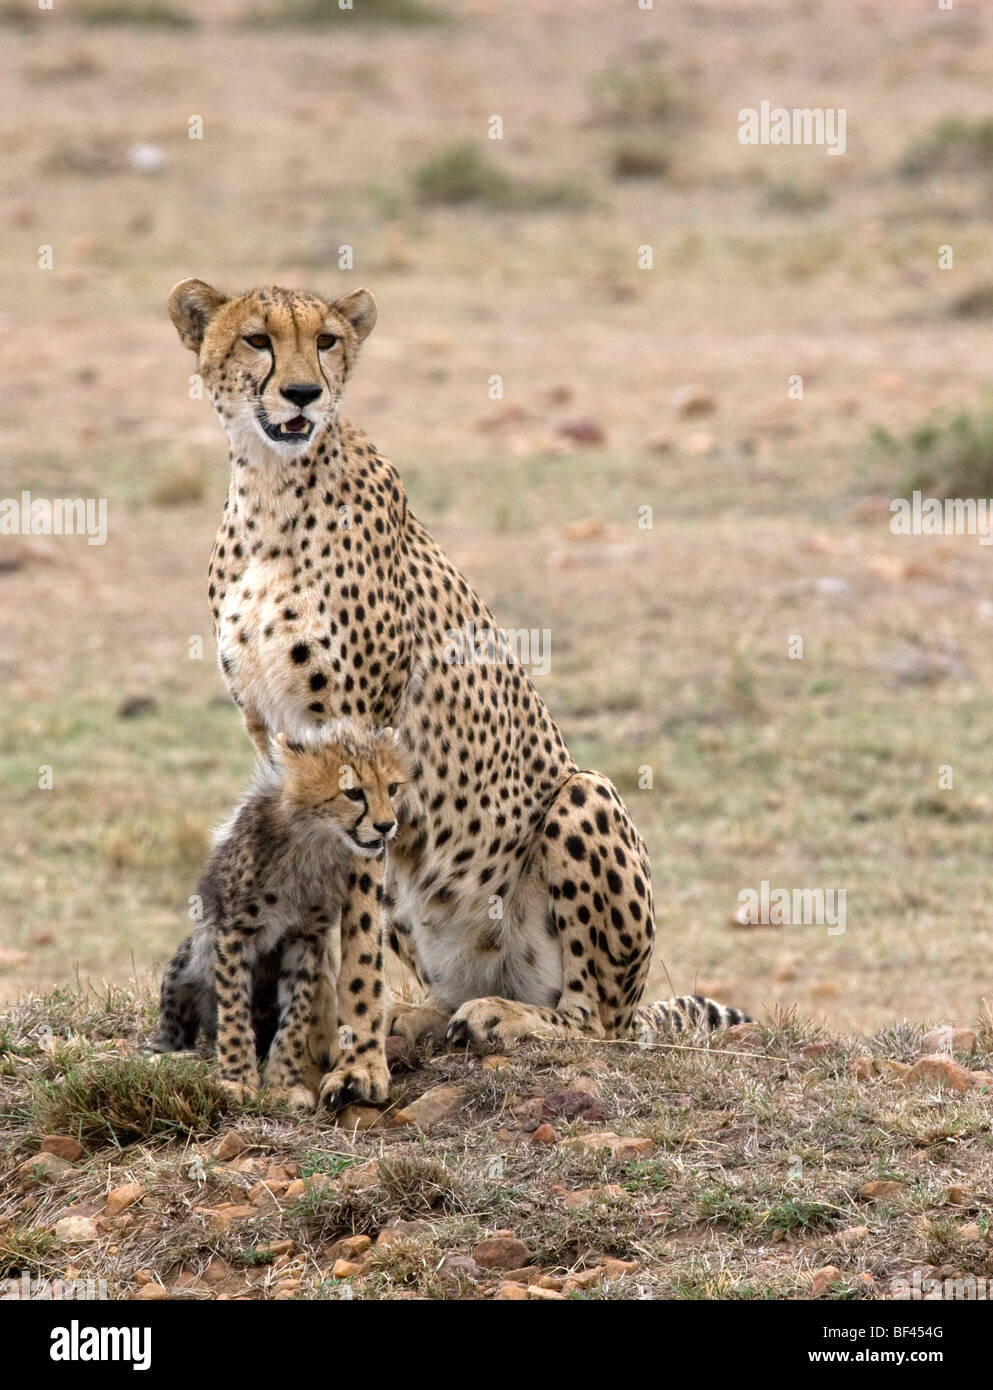 Cheetah with its cub - Stock Image